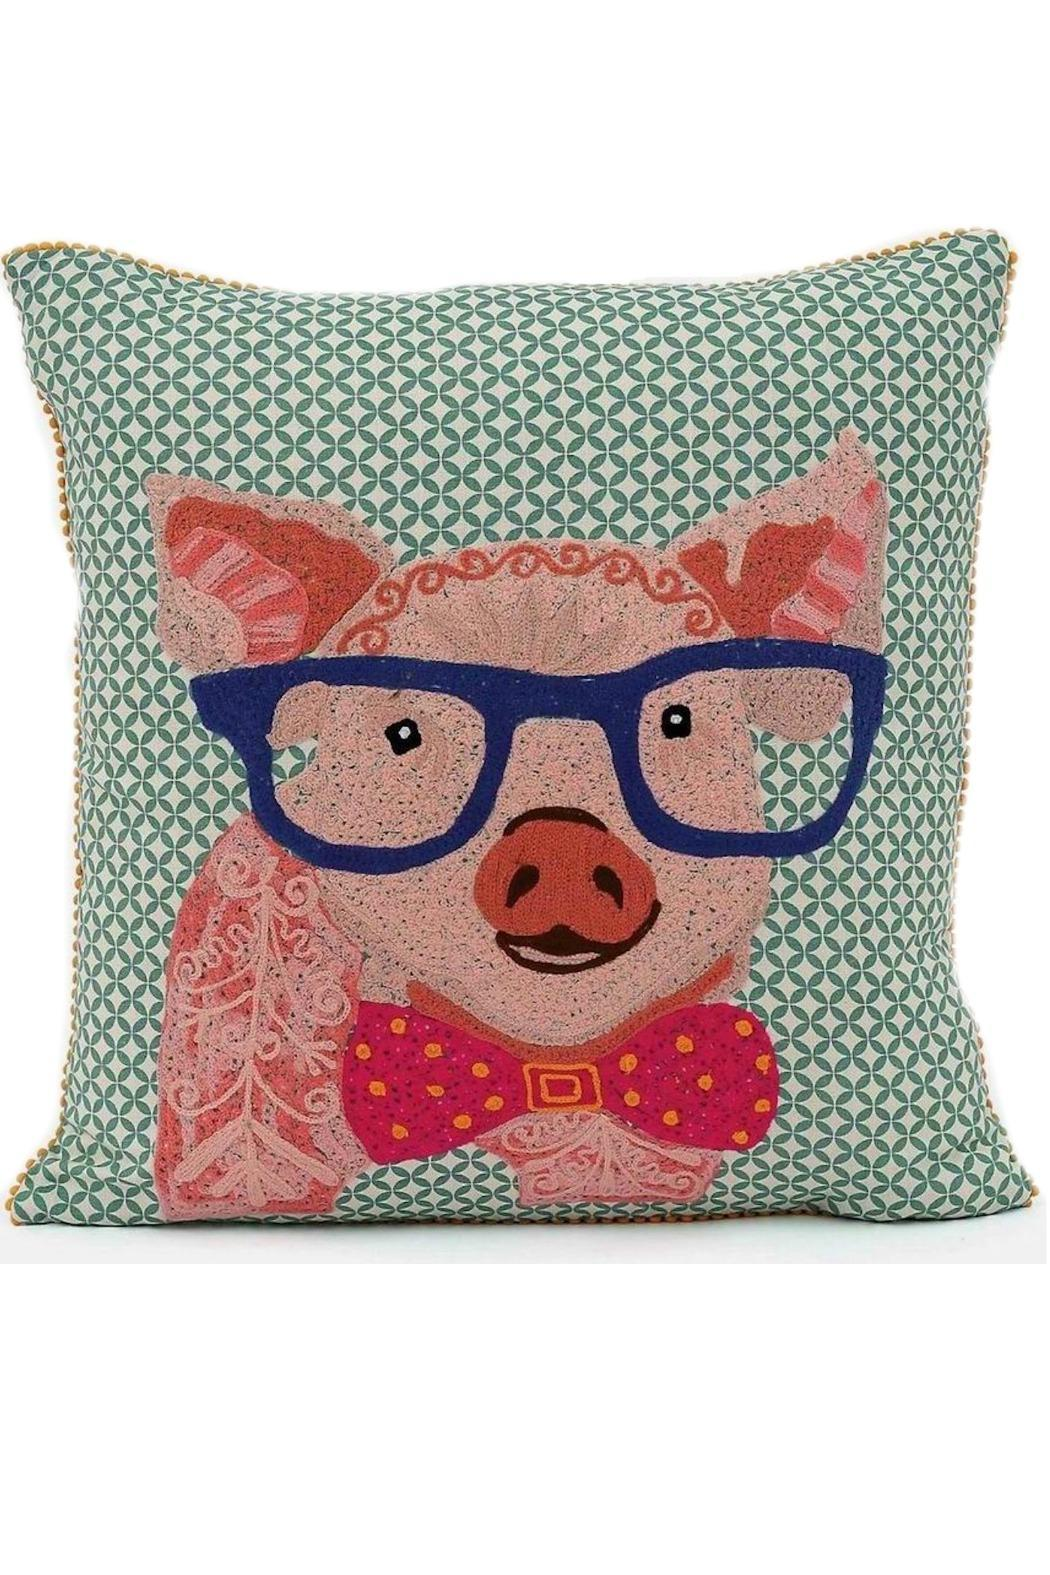 Karma Living Pig Emboidered Pillow From Maryland By